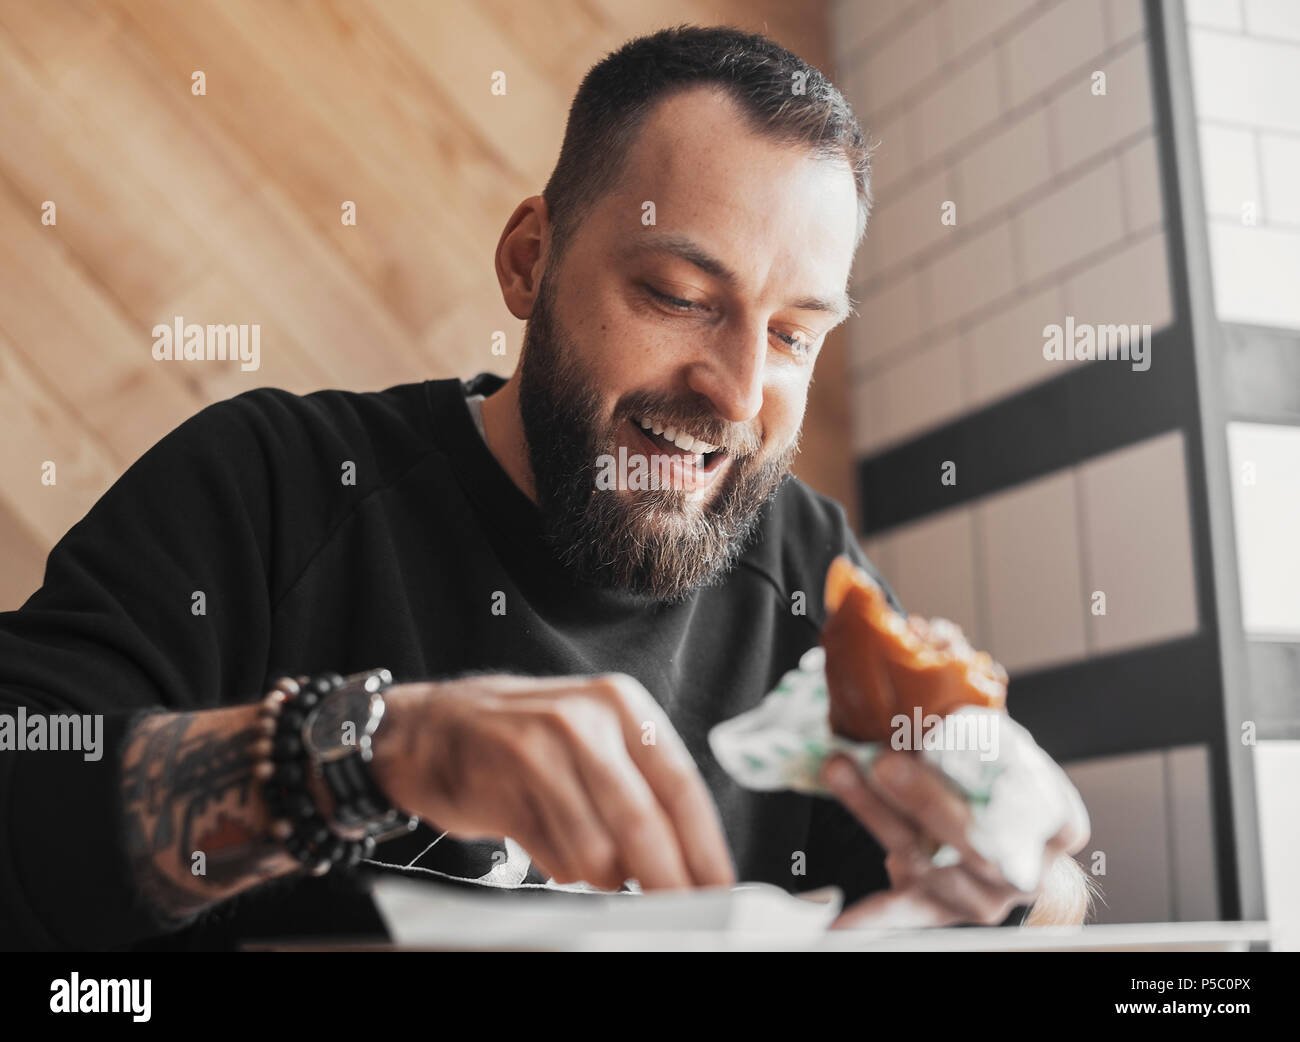 Young bearded man eating burger and smiling close up. - Stock Image